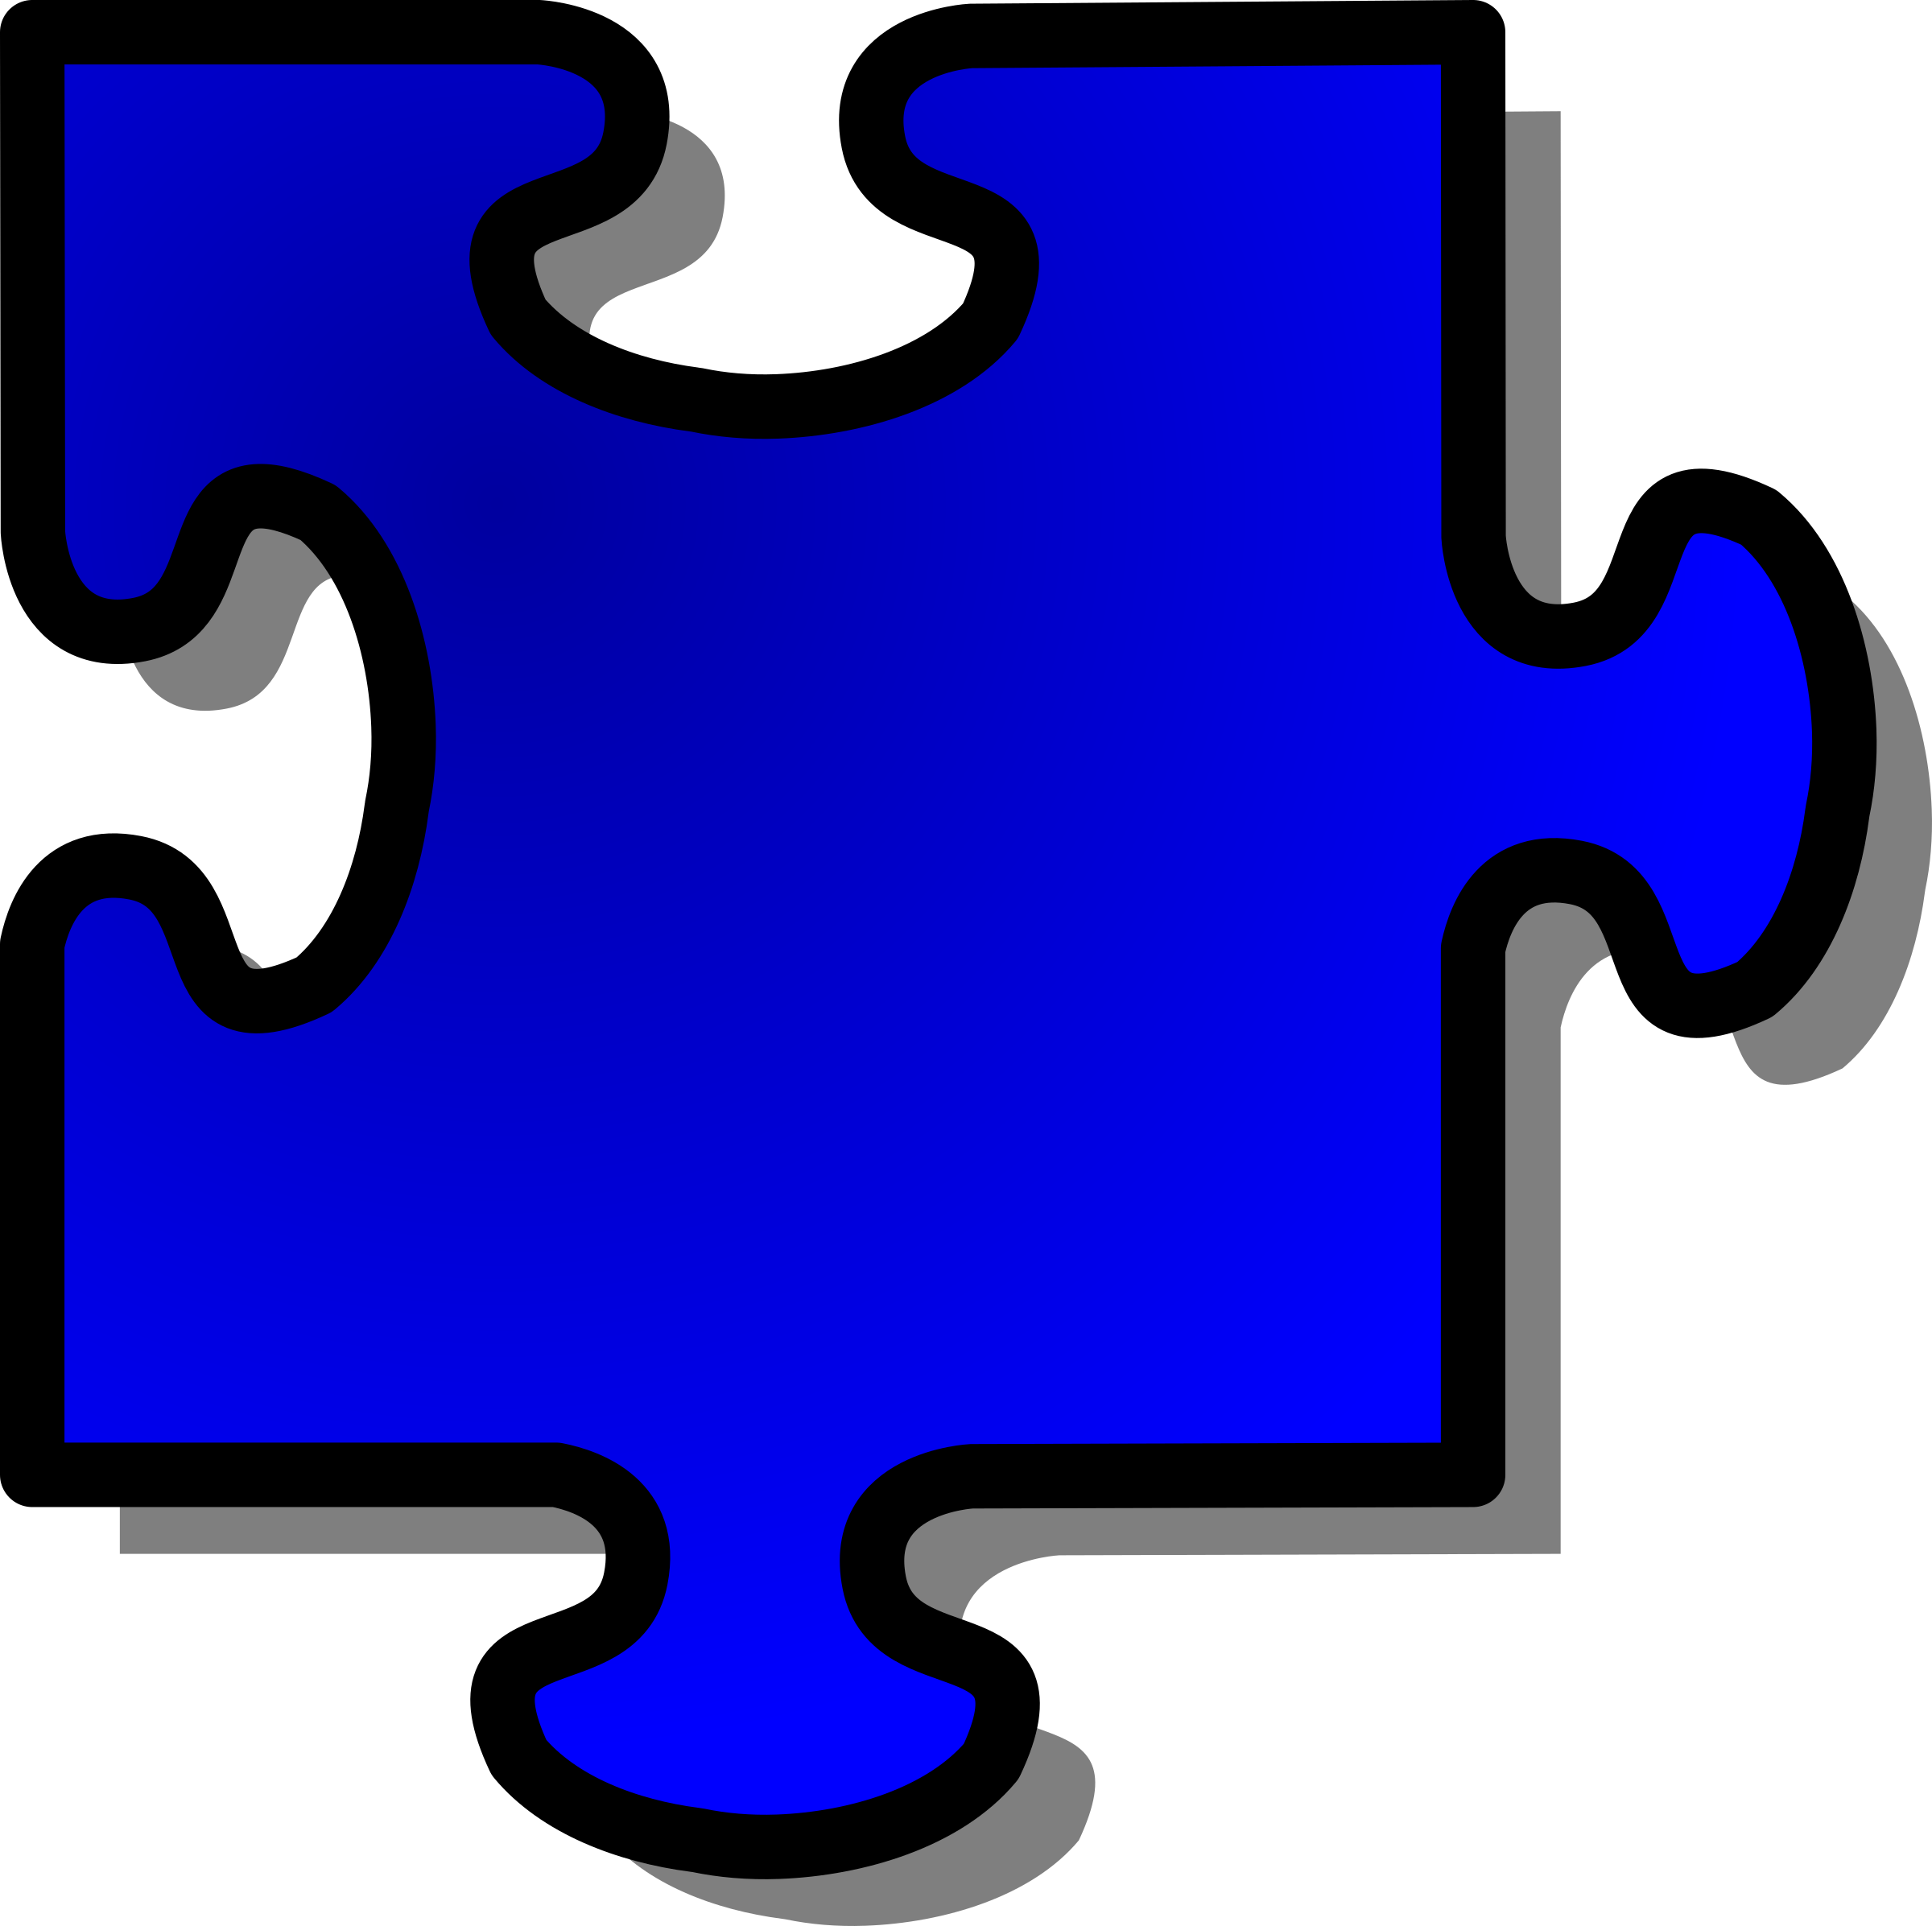 Blue Jigsaw piece 10 by nicubunu